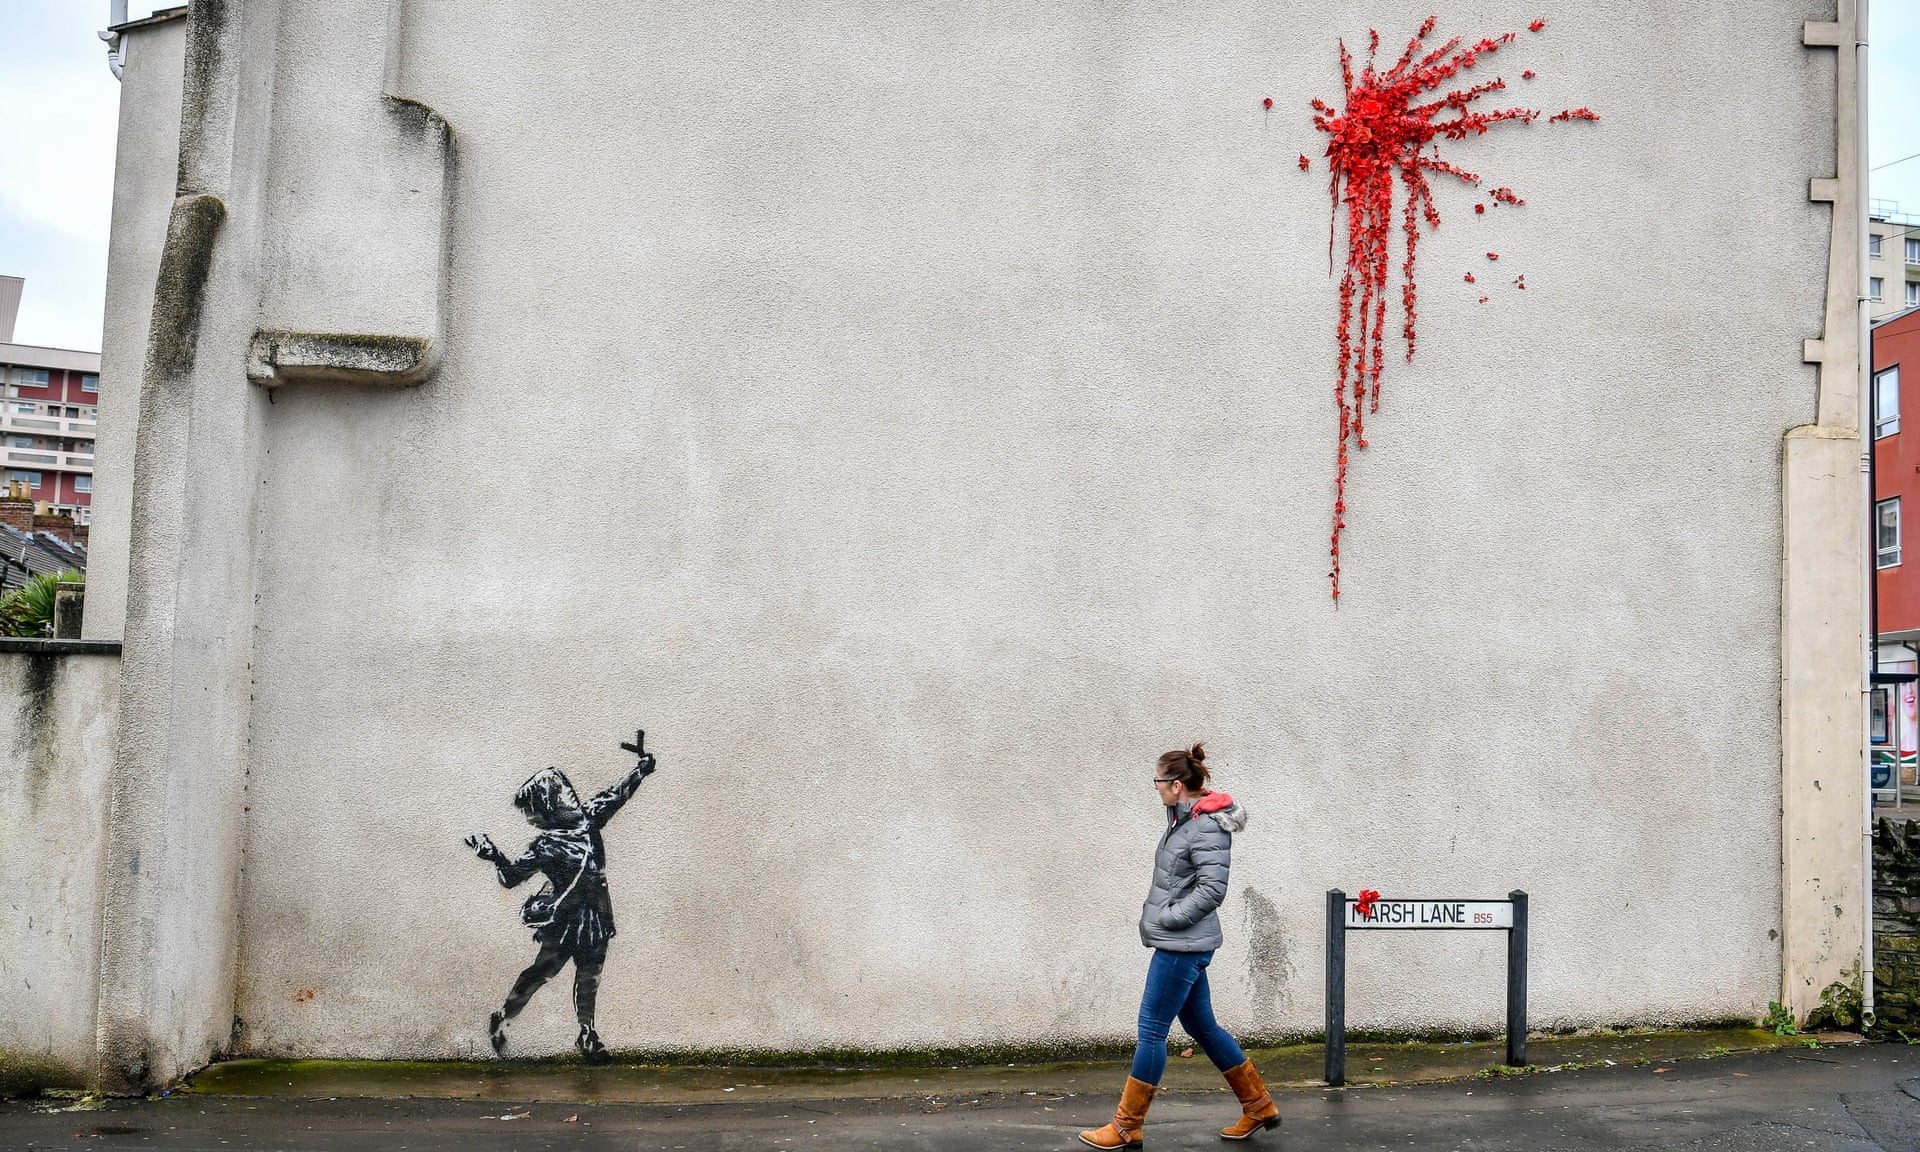 Banksy, the elusive street artist from Bristol, is believed to be behind the artwork on the side of a house in the city's Barton Hill district. Photograph: Ben Birchall/PA